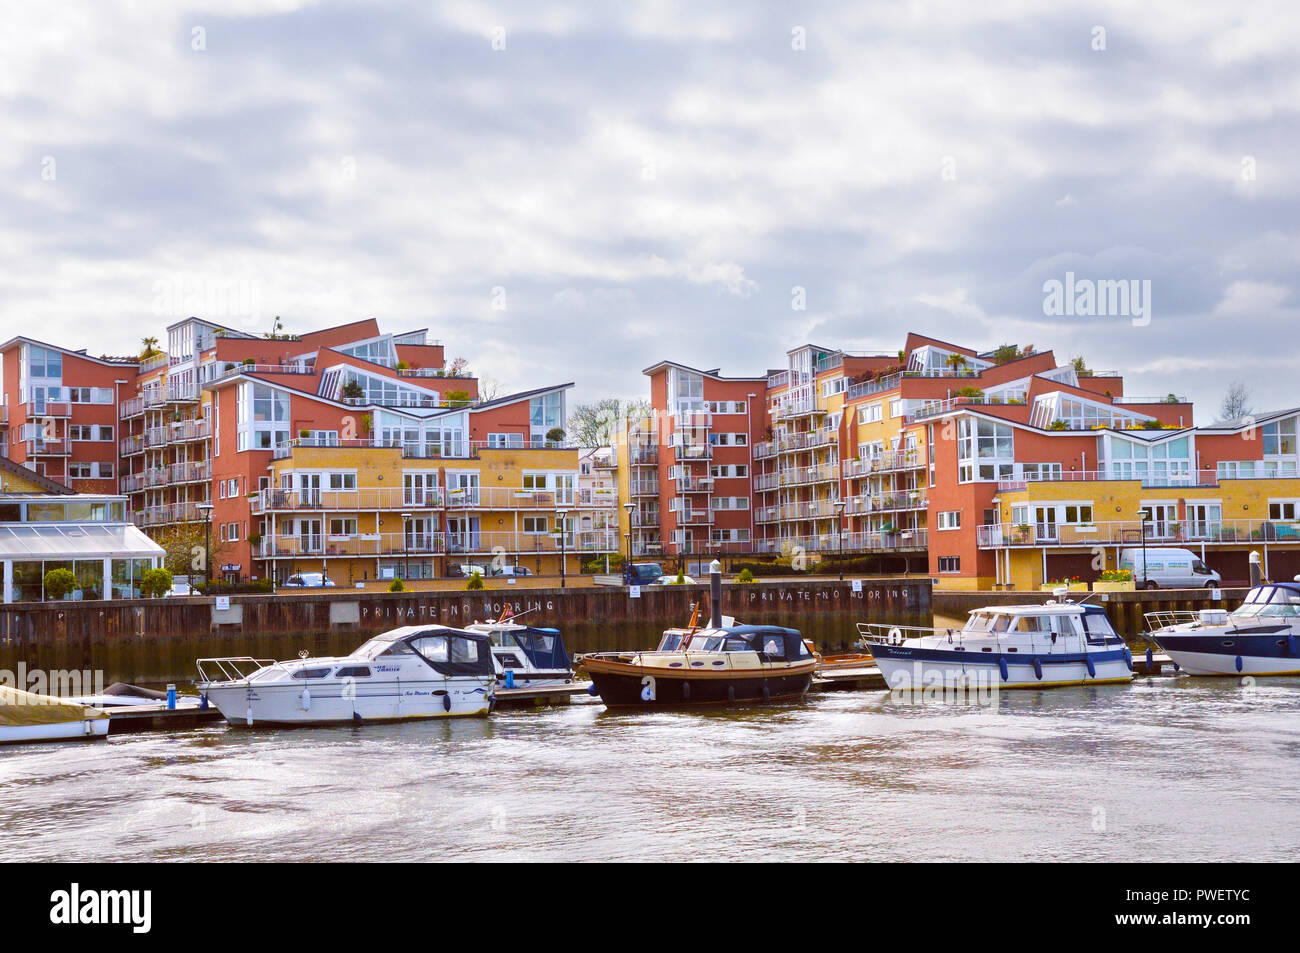 Boats and riverside apartments at Teddington Lock on the River Thames - Stock Image